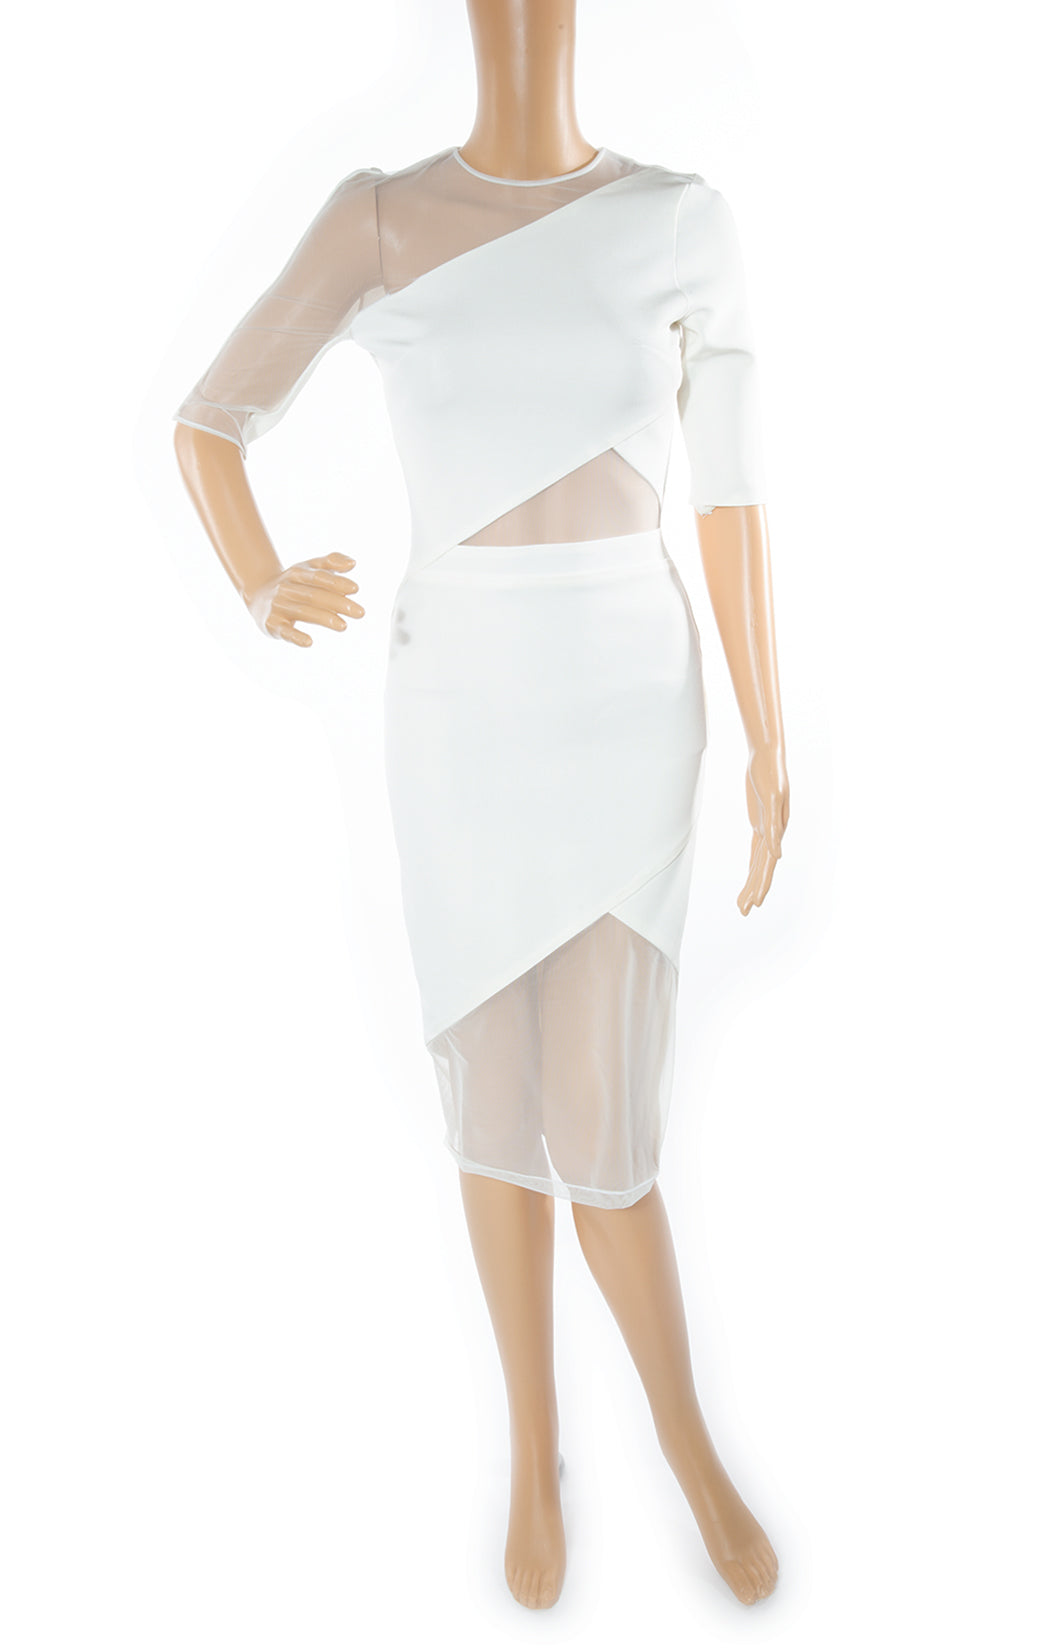 Front view of DAVID KOMA Dress Size: No tags, fits like US 4-6